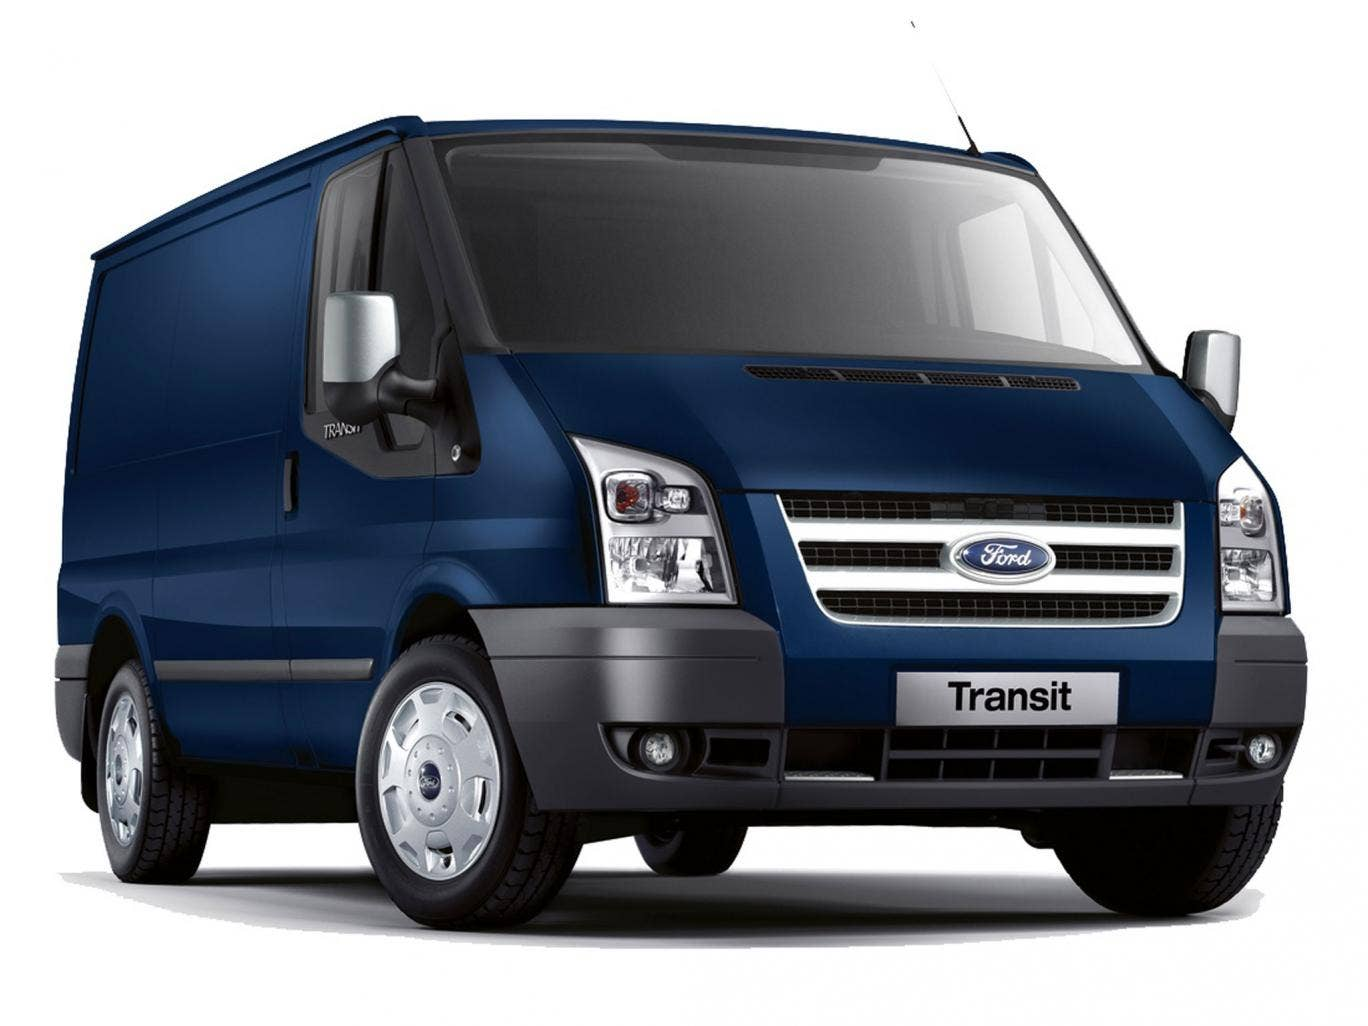 The transit van is no longer a minor British institution